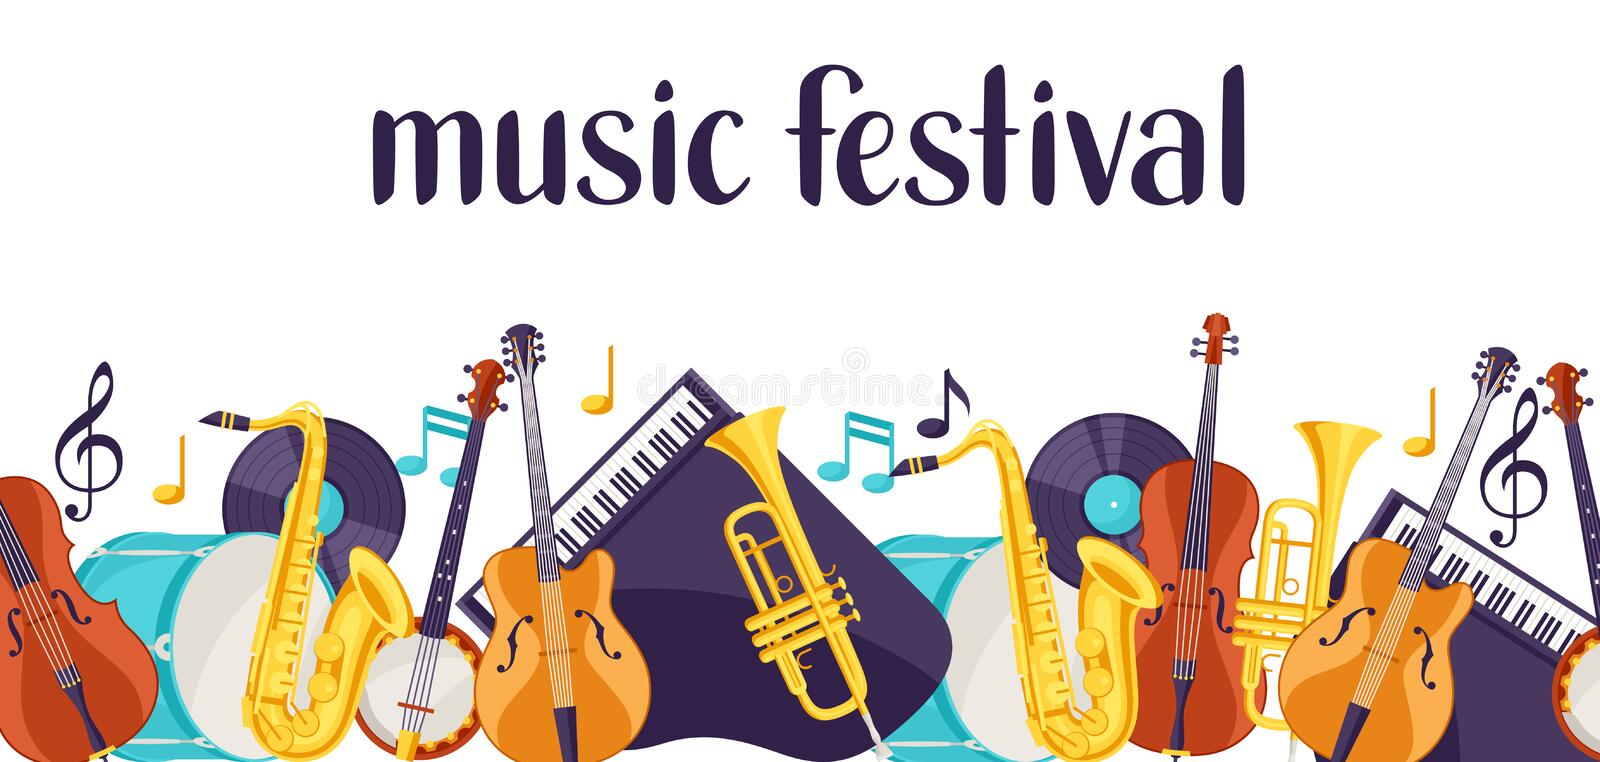 Jazz music festival banner with musical instruments royalty free illustration